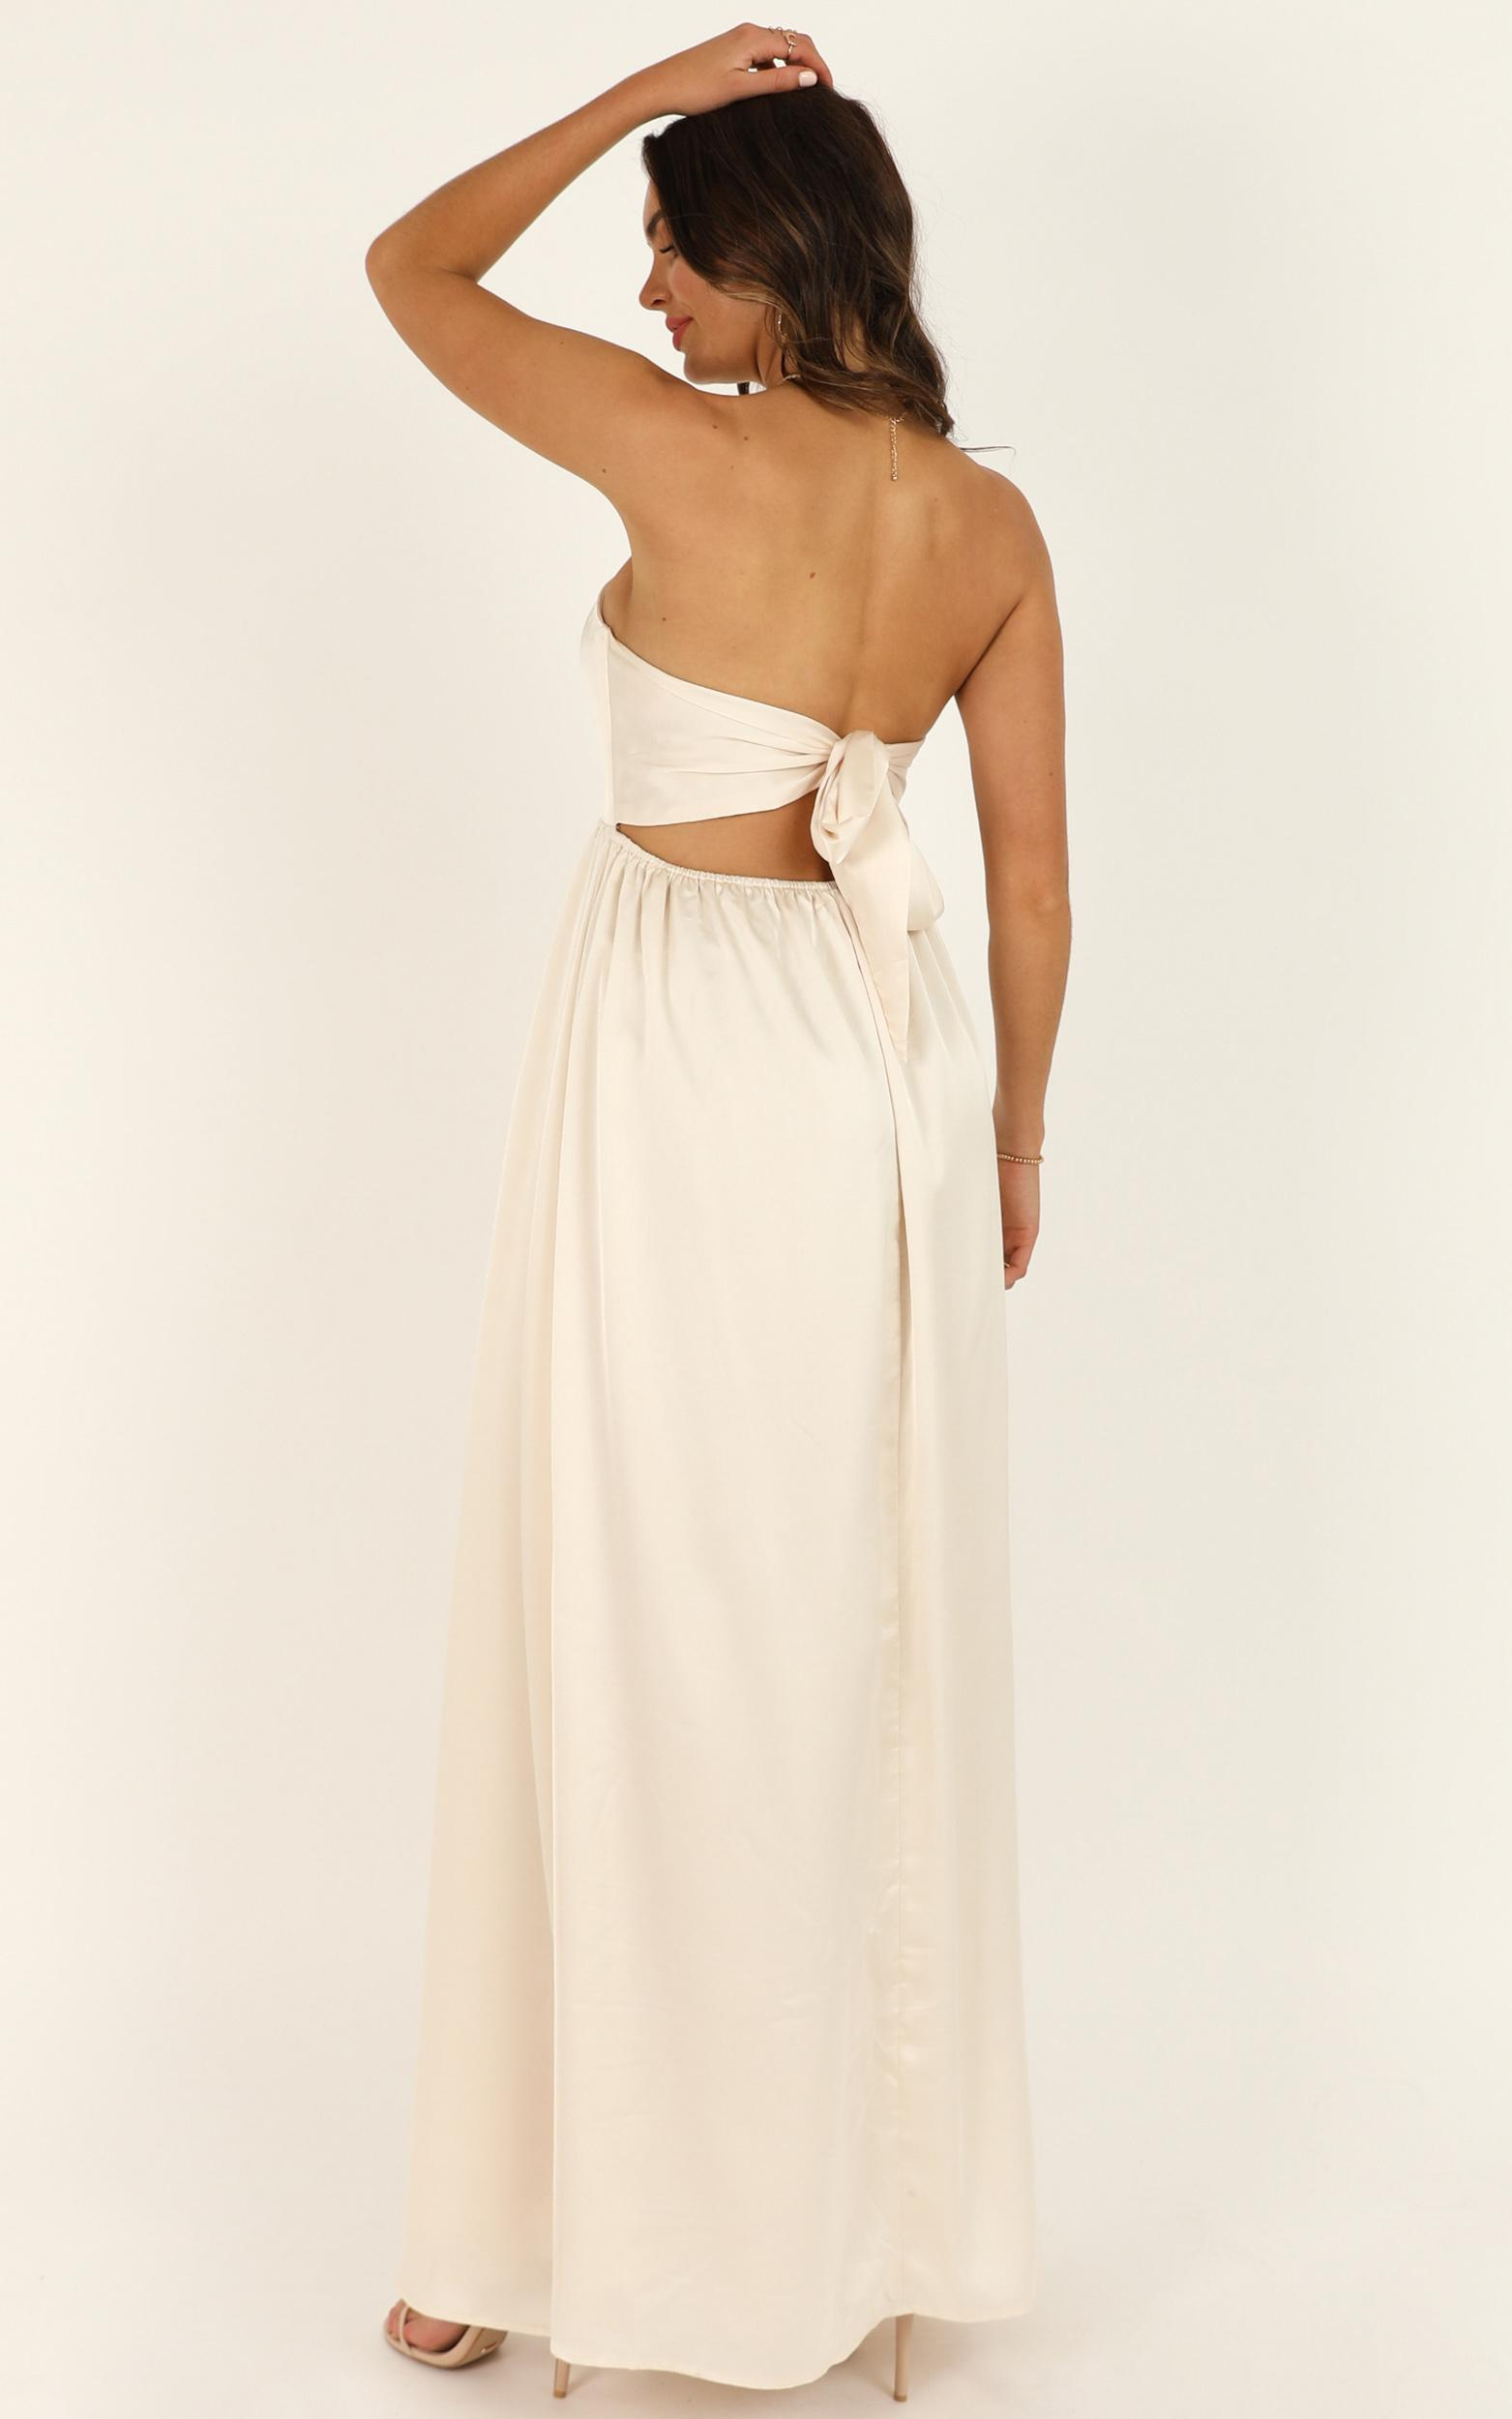 Permission To Love Dress in champagne satin - 18 (XXXL), Beige, hi-res image number null